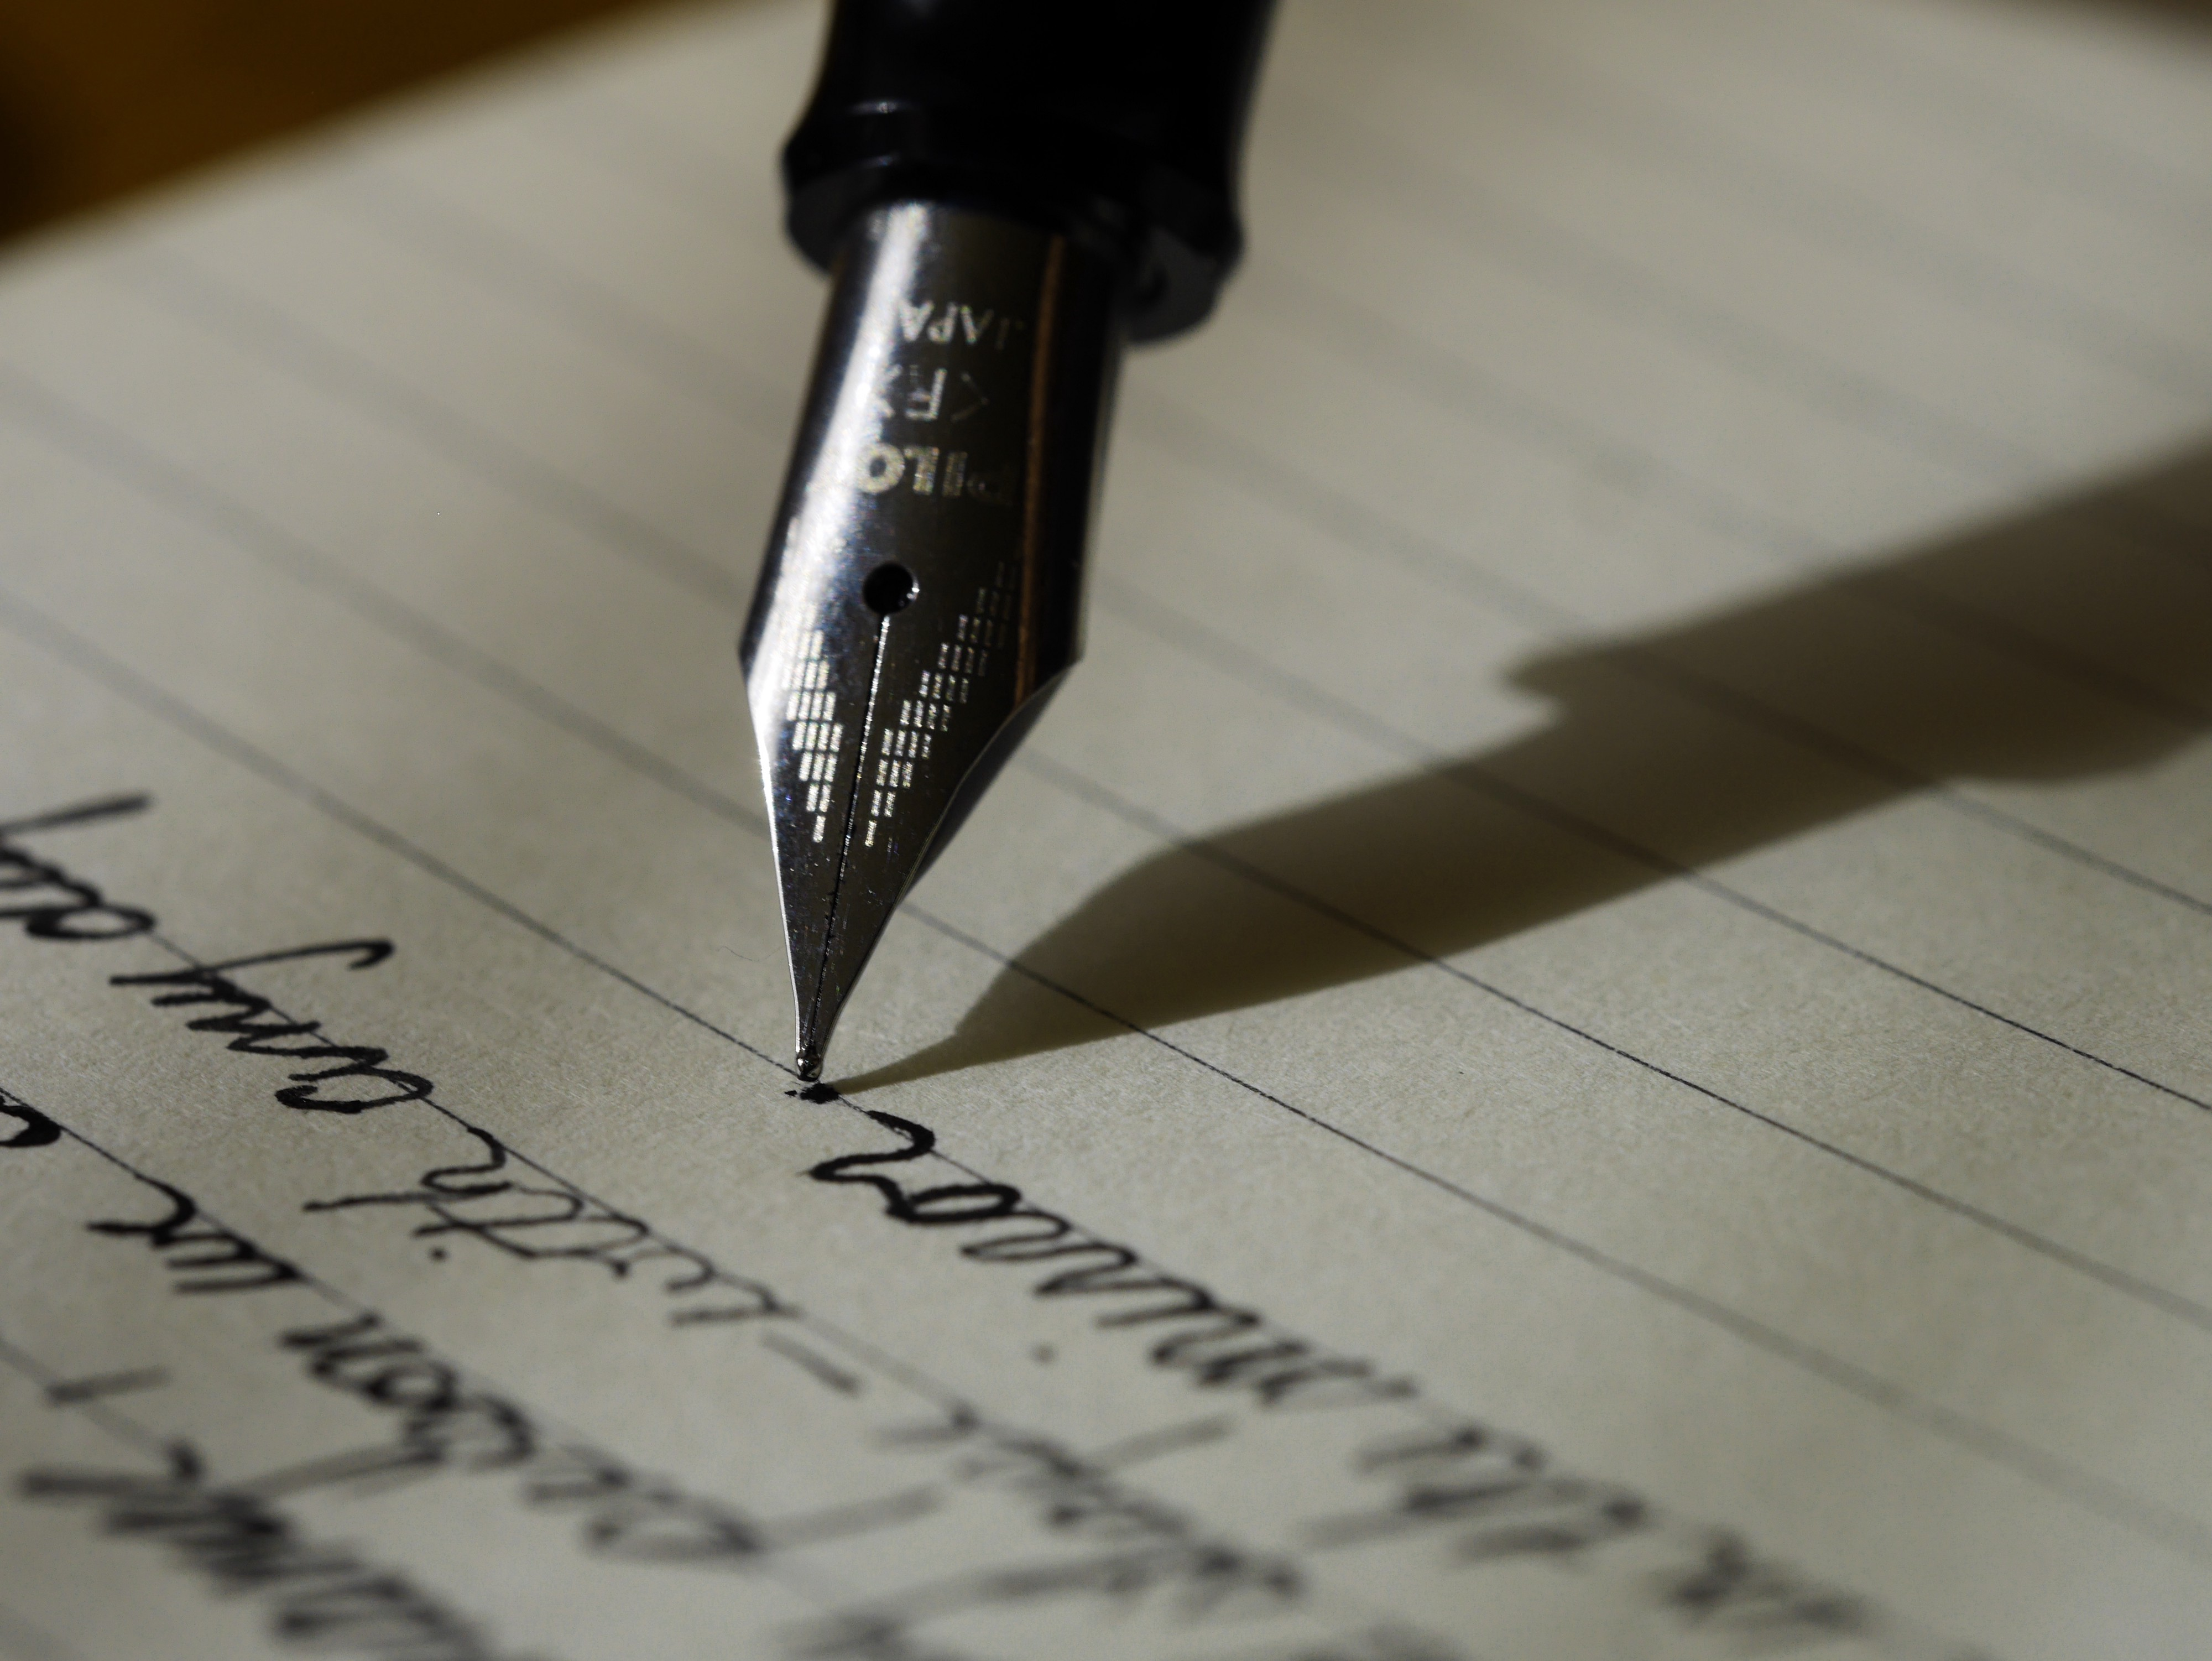 Best tips on essay format from experts - 2020